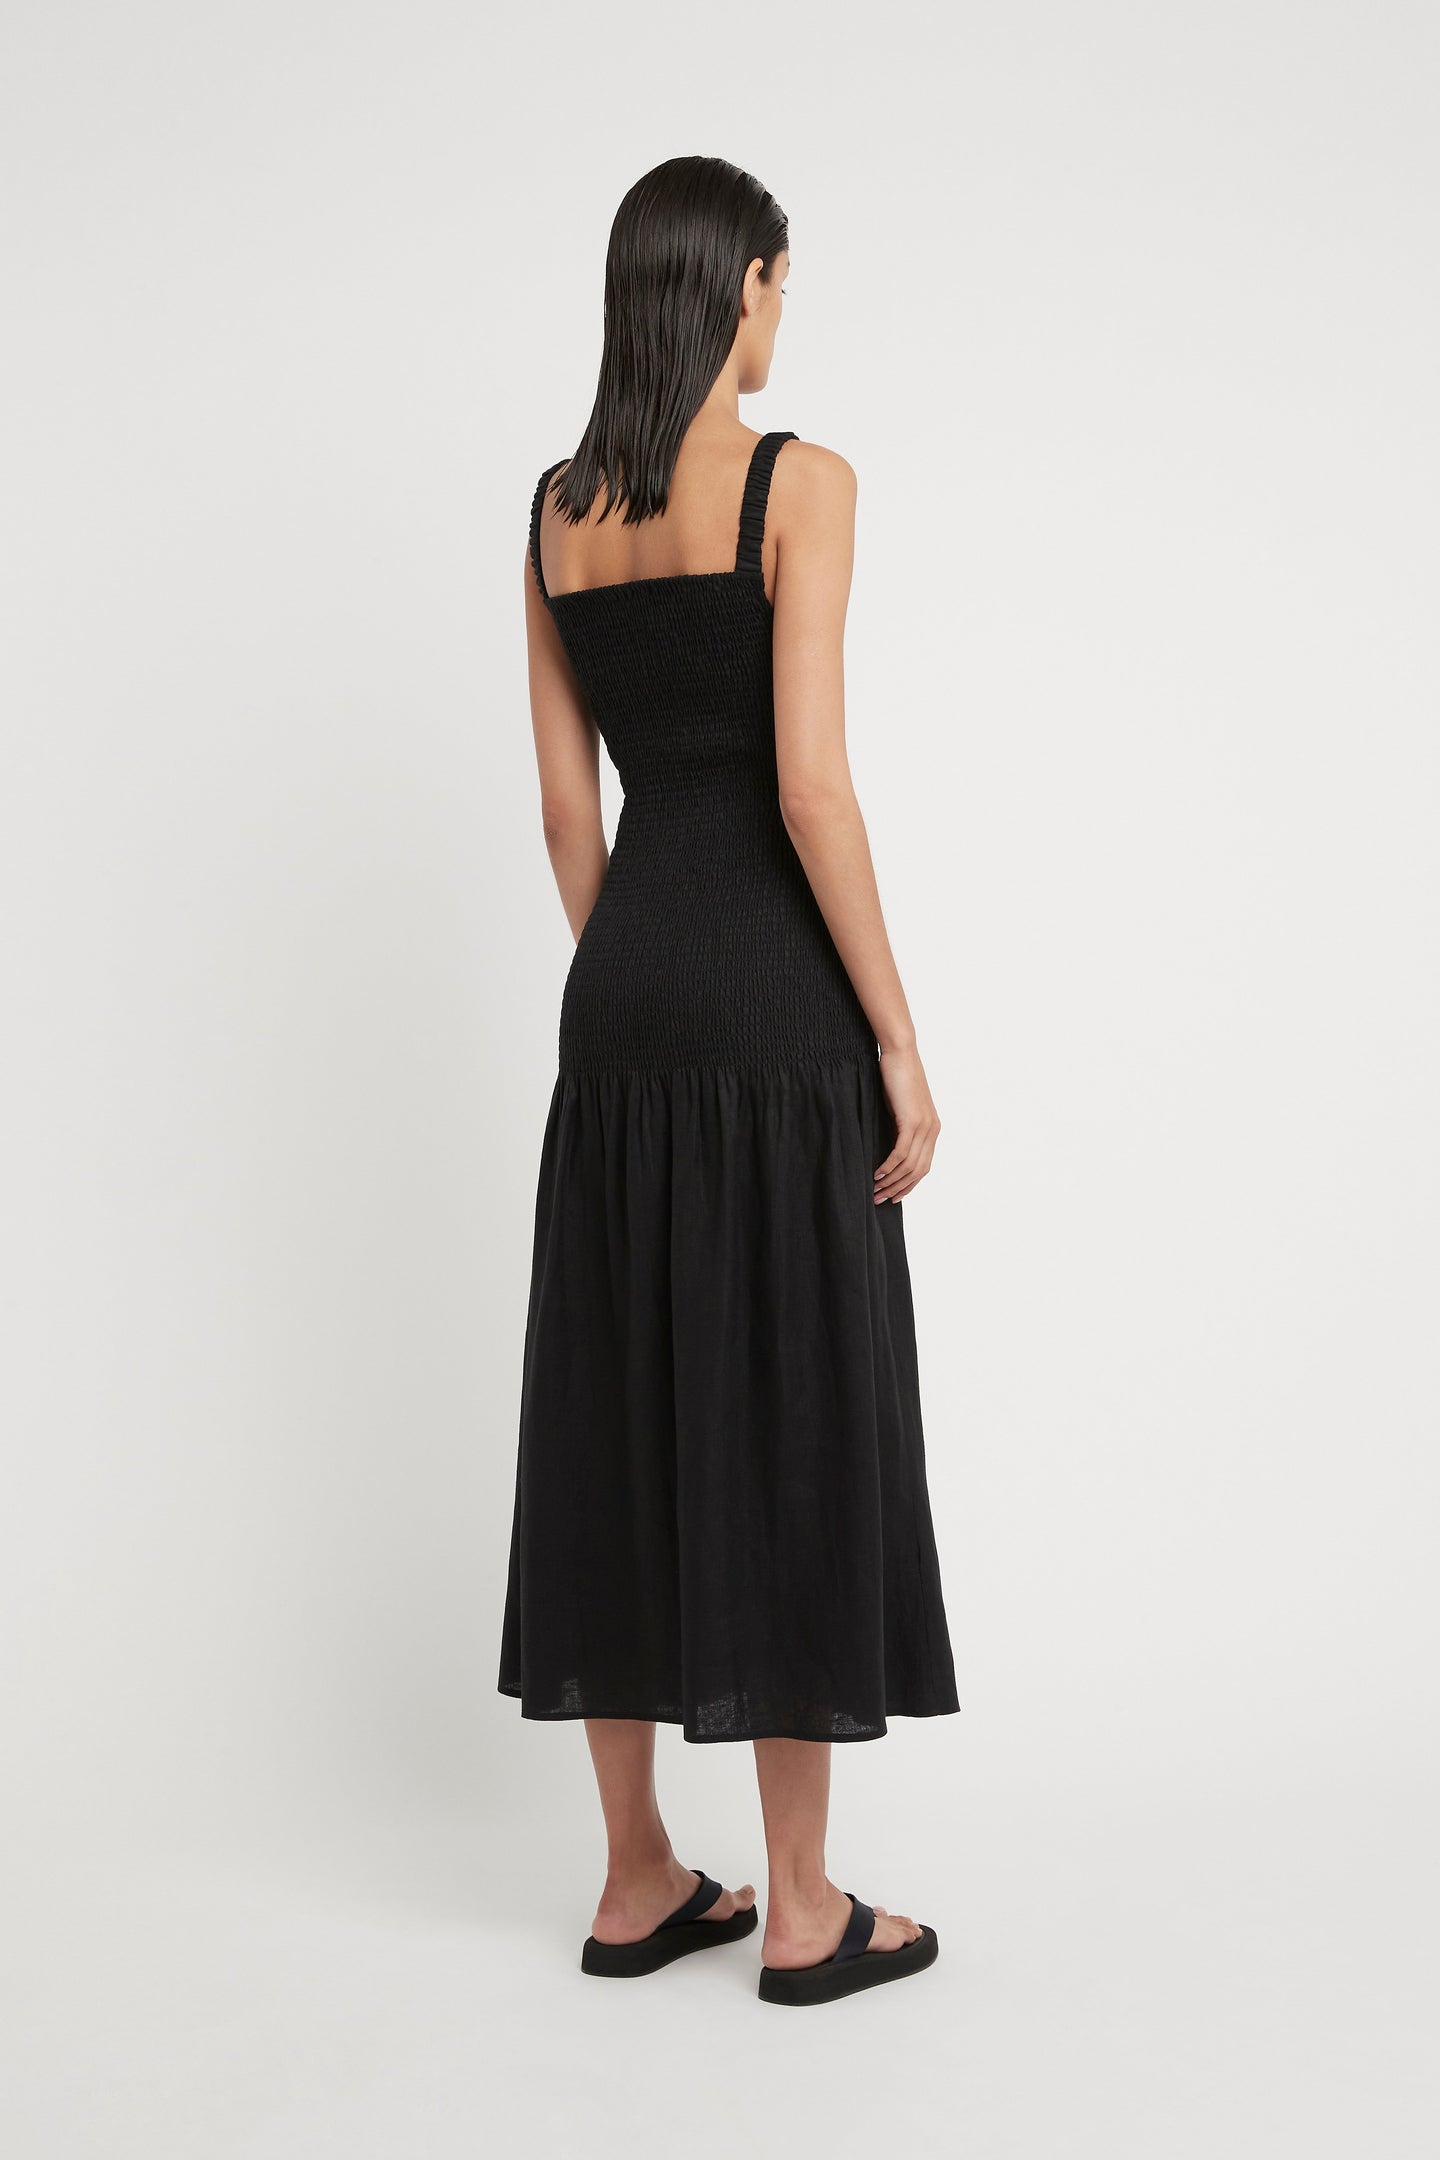 SIR the label MADELYN REVERSIBLE DRESS BLACK